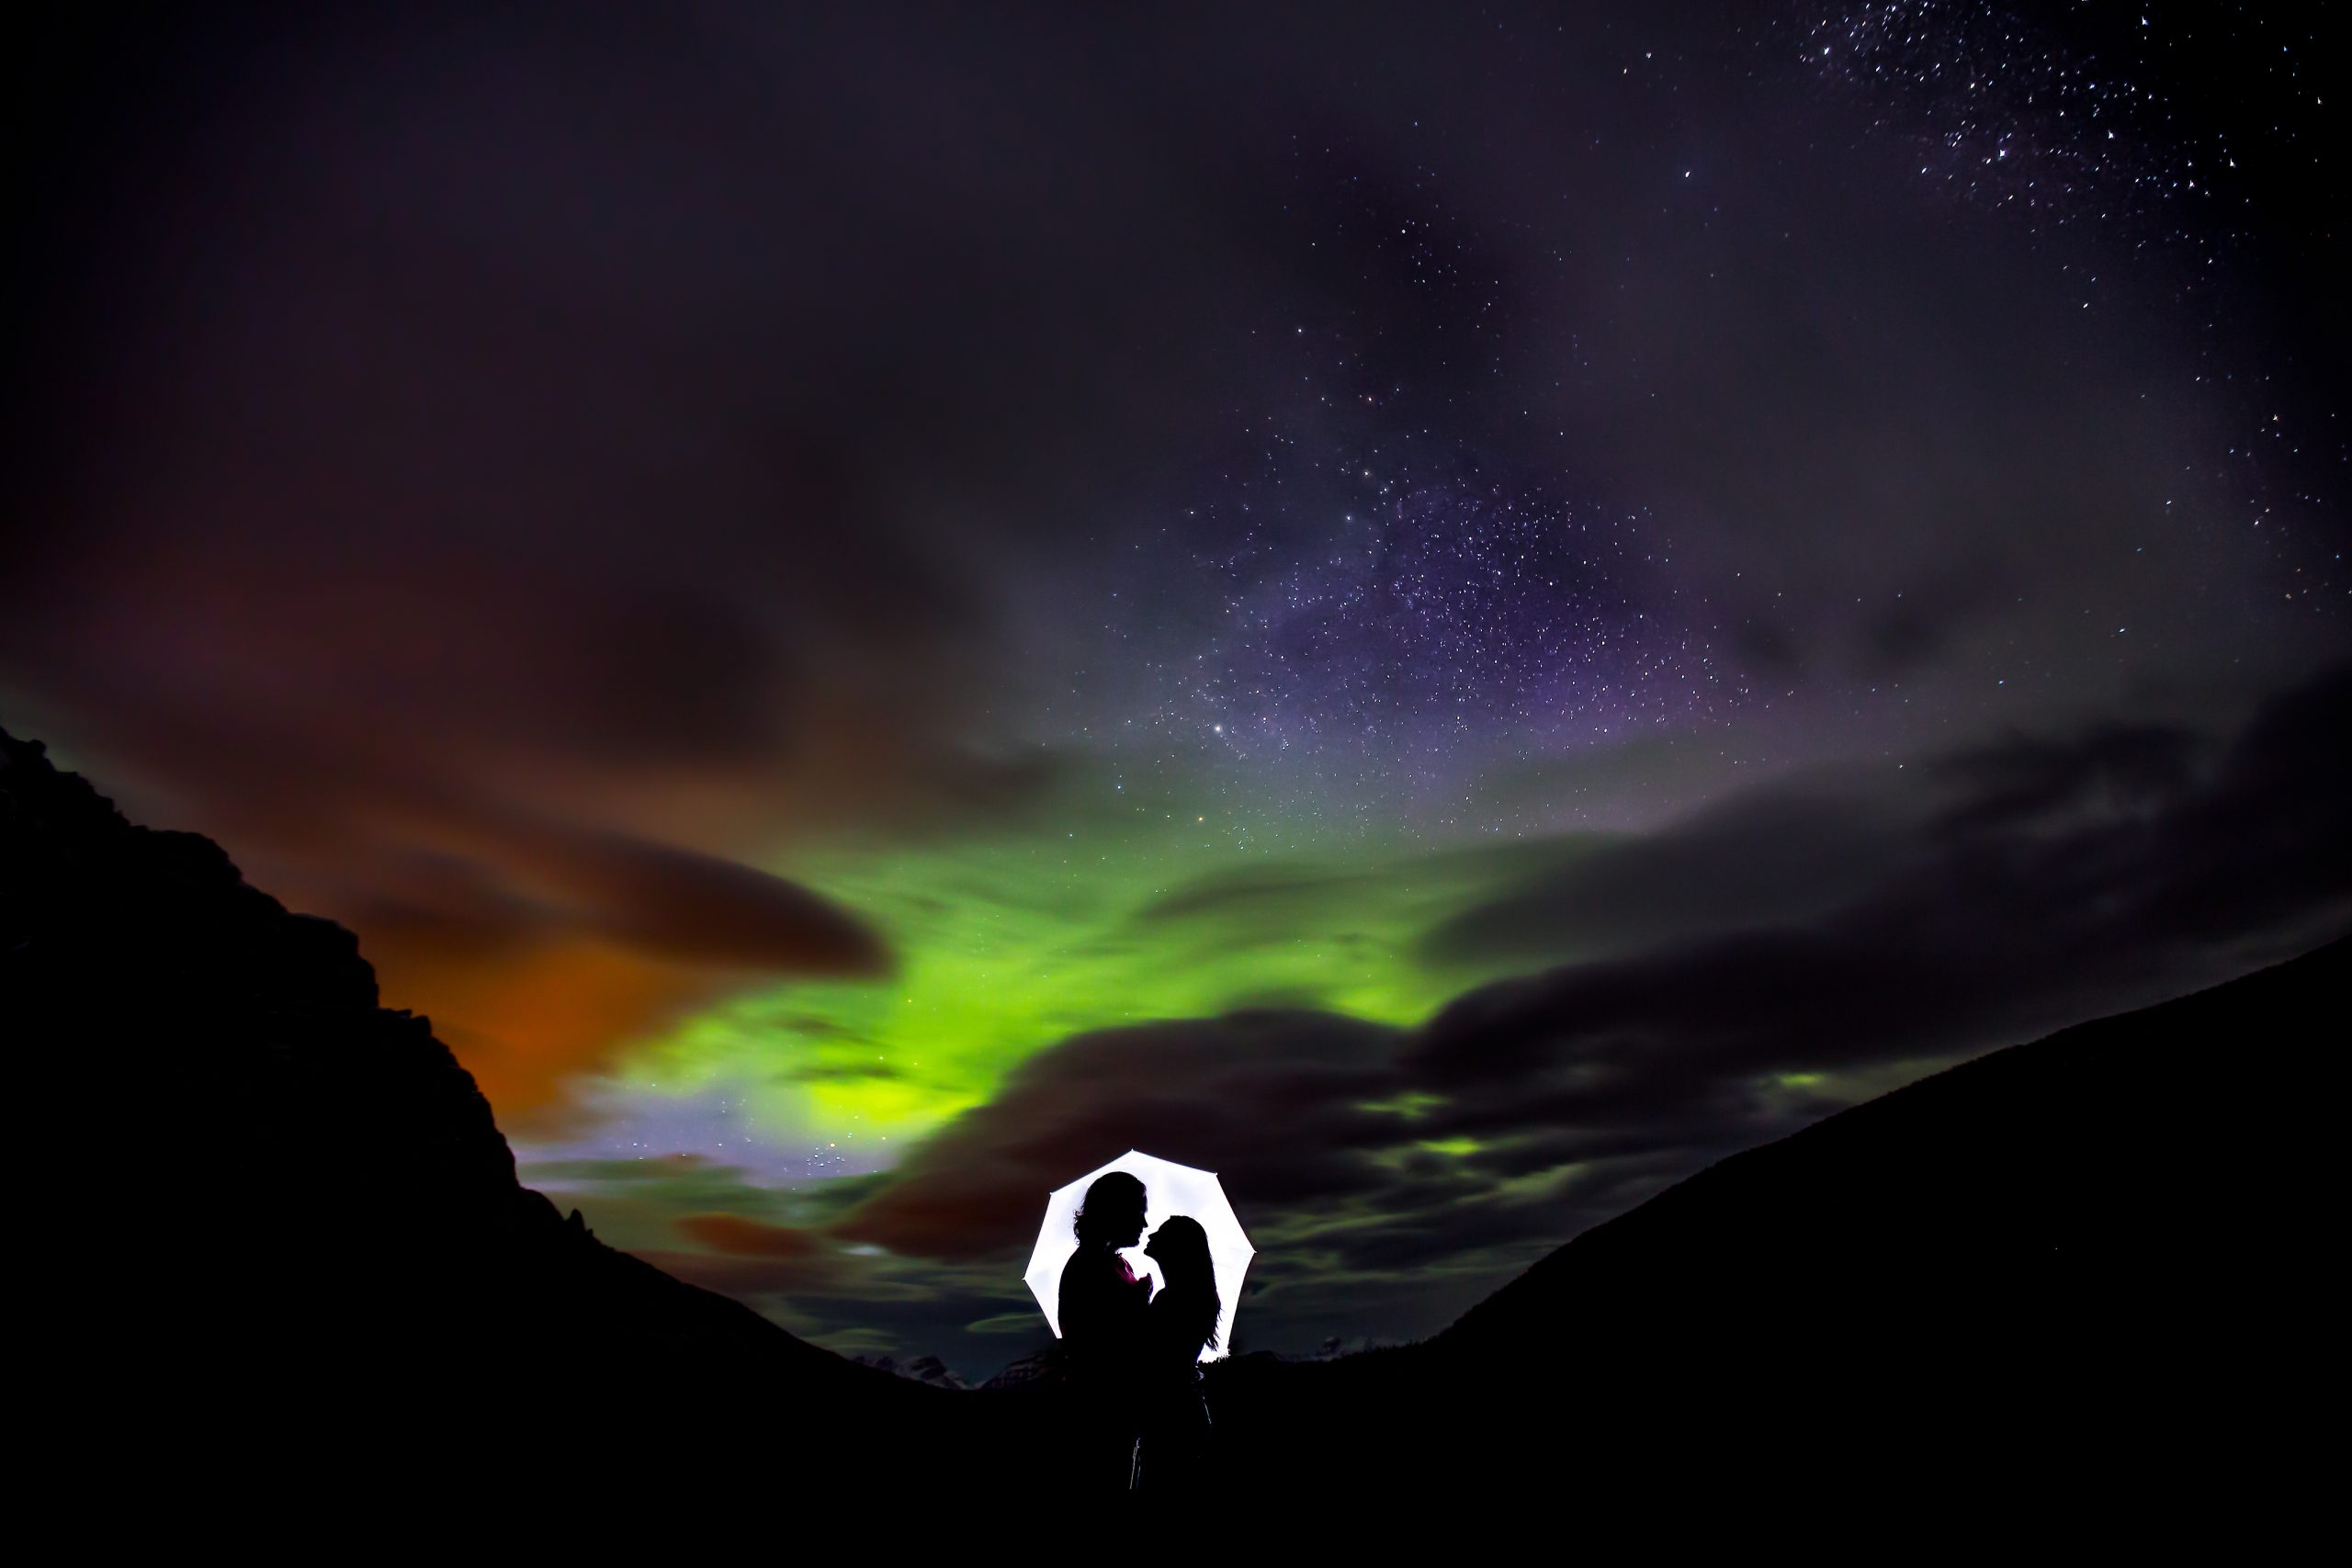 Couple hold each other while aurora borealis illuminates the background